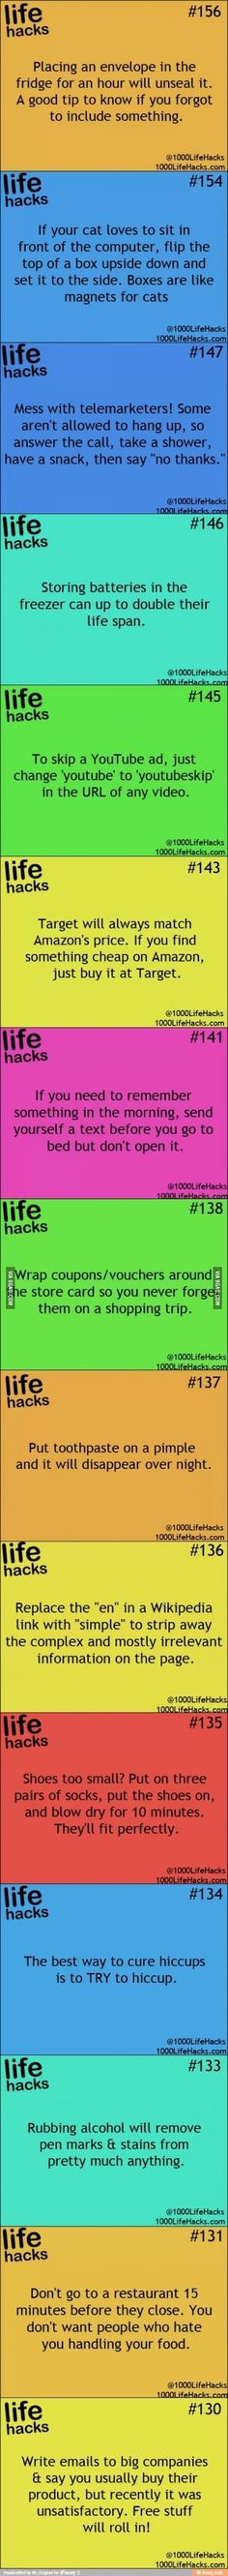 Cool life hacks.. They do help a lot ..